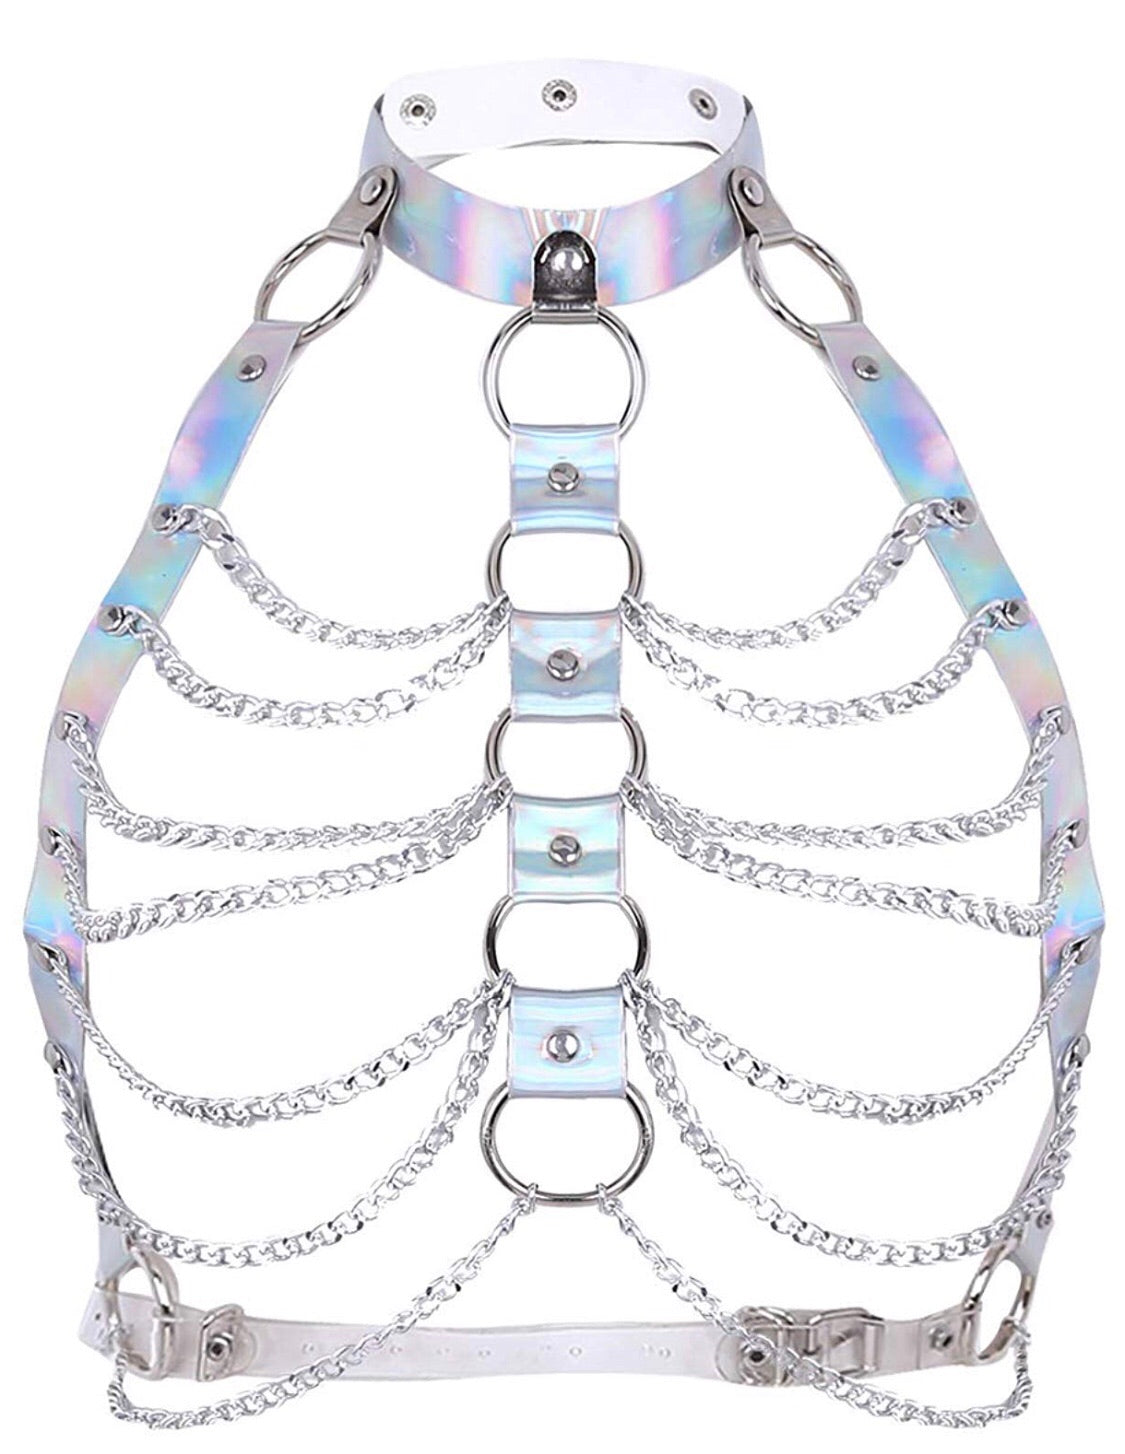 Chain Halter Holographic Top - burningbabeclothingco